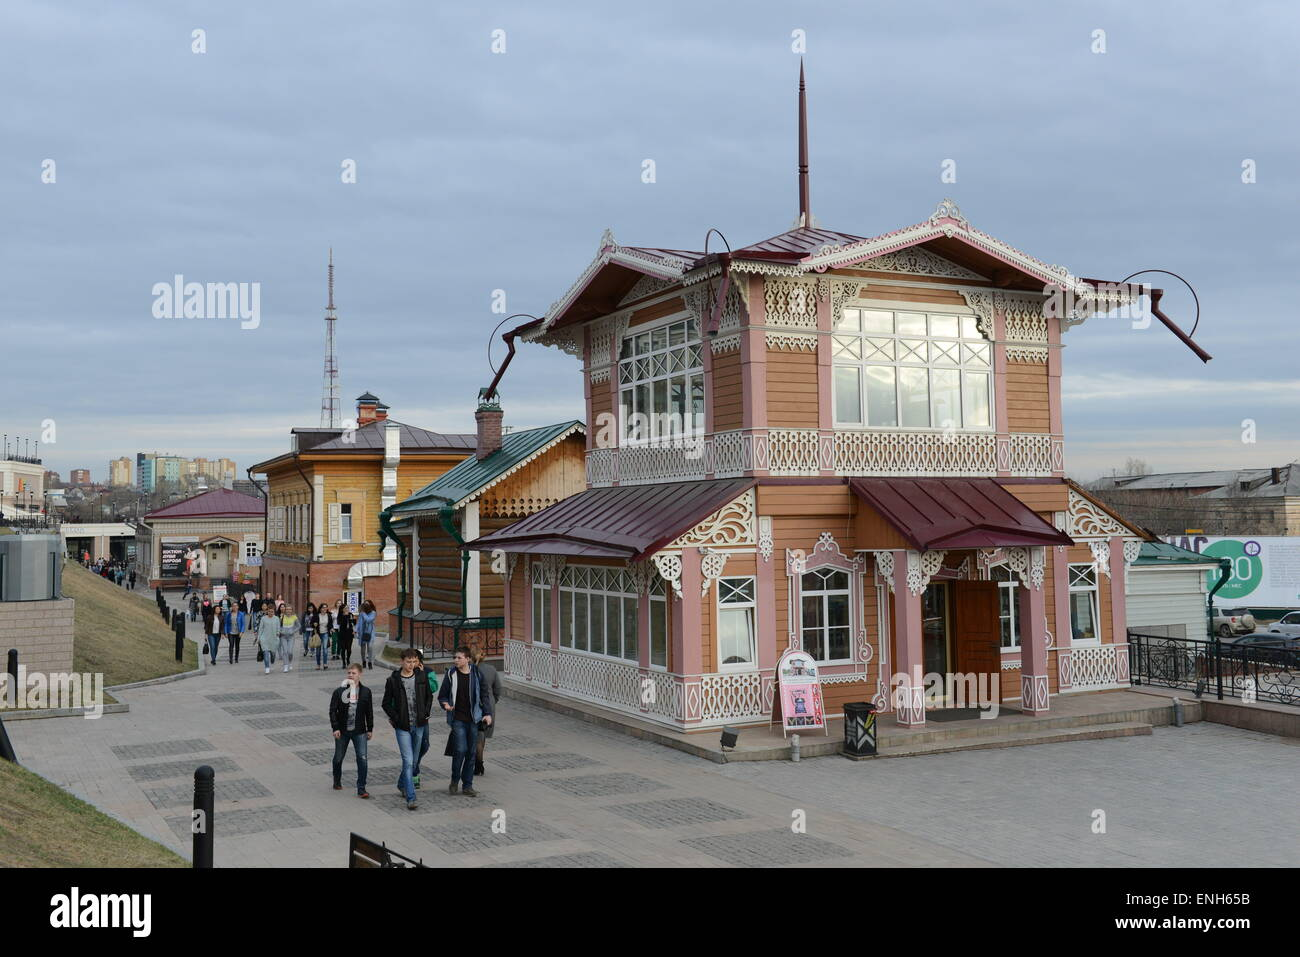 130 Kvartal is Irkutsk's most popular entertainment area. Restaurants, clubs and bars located in old traditional - Stock Image